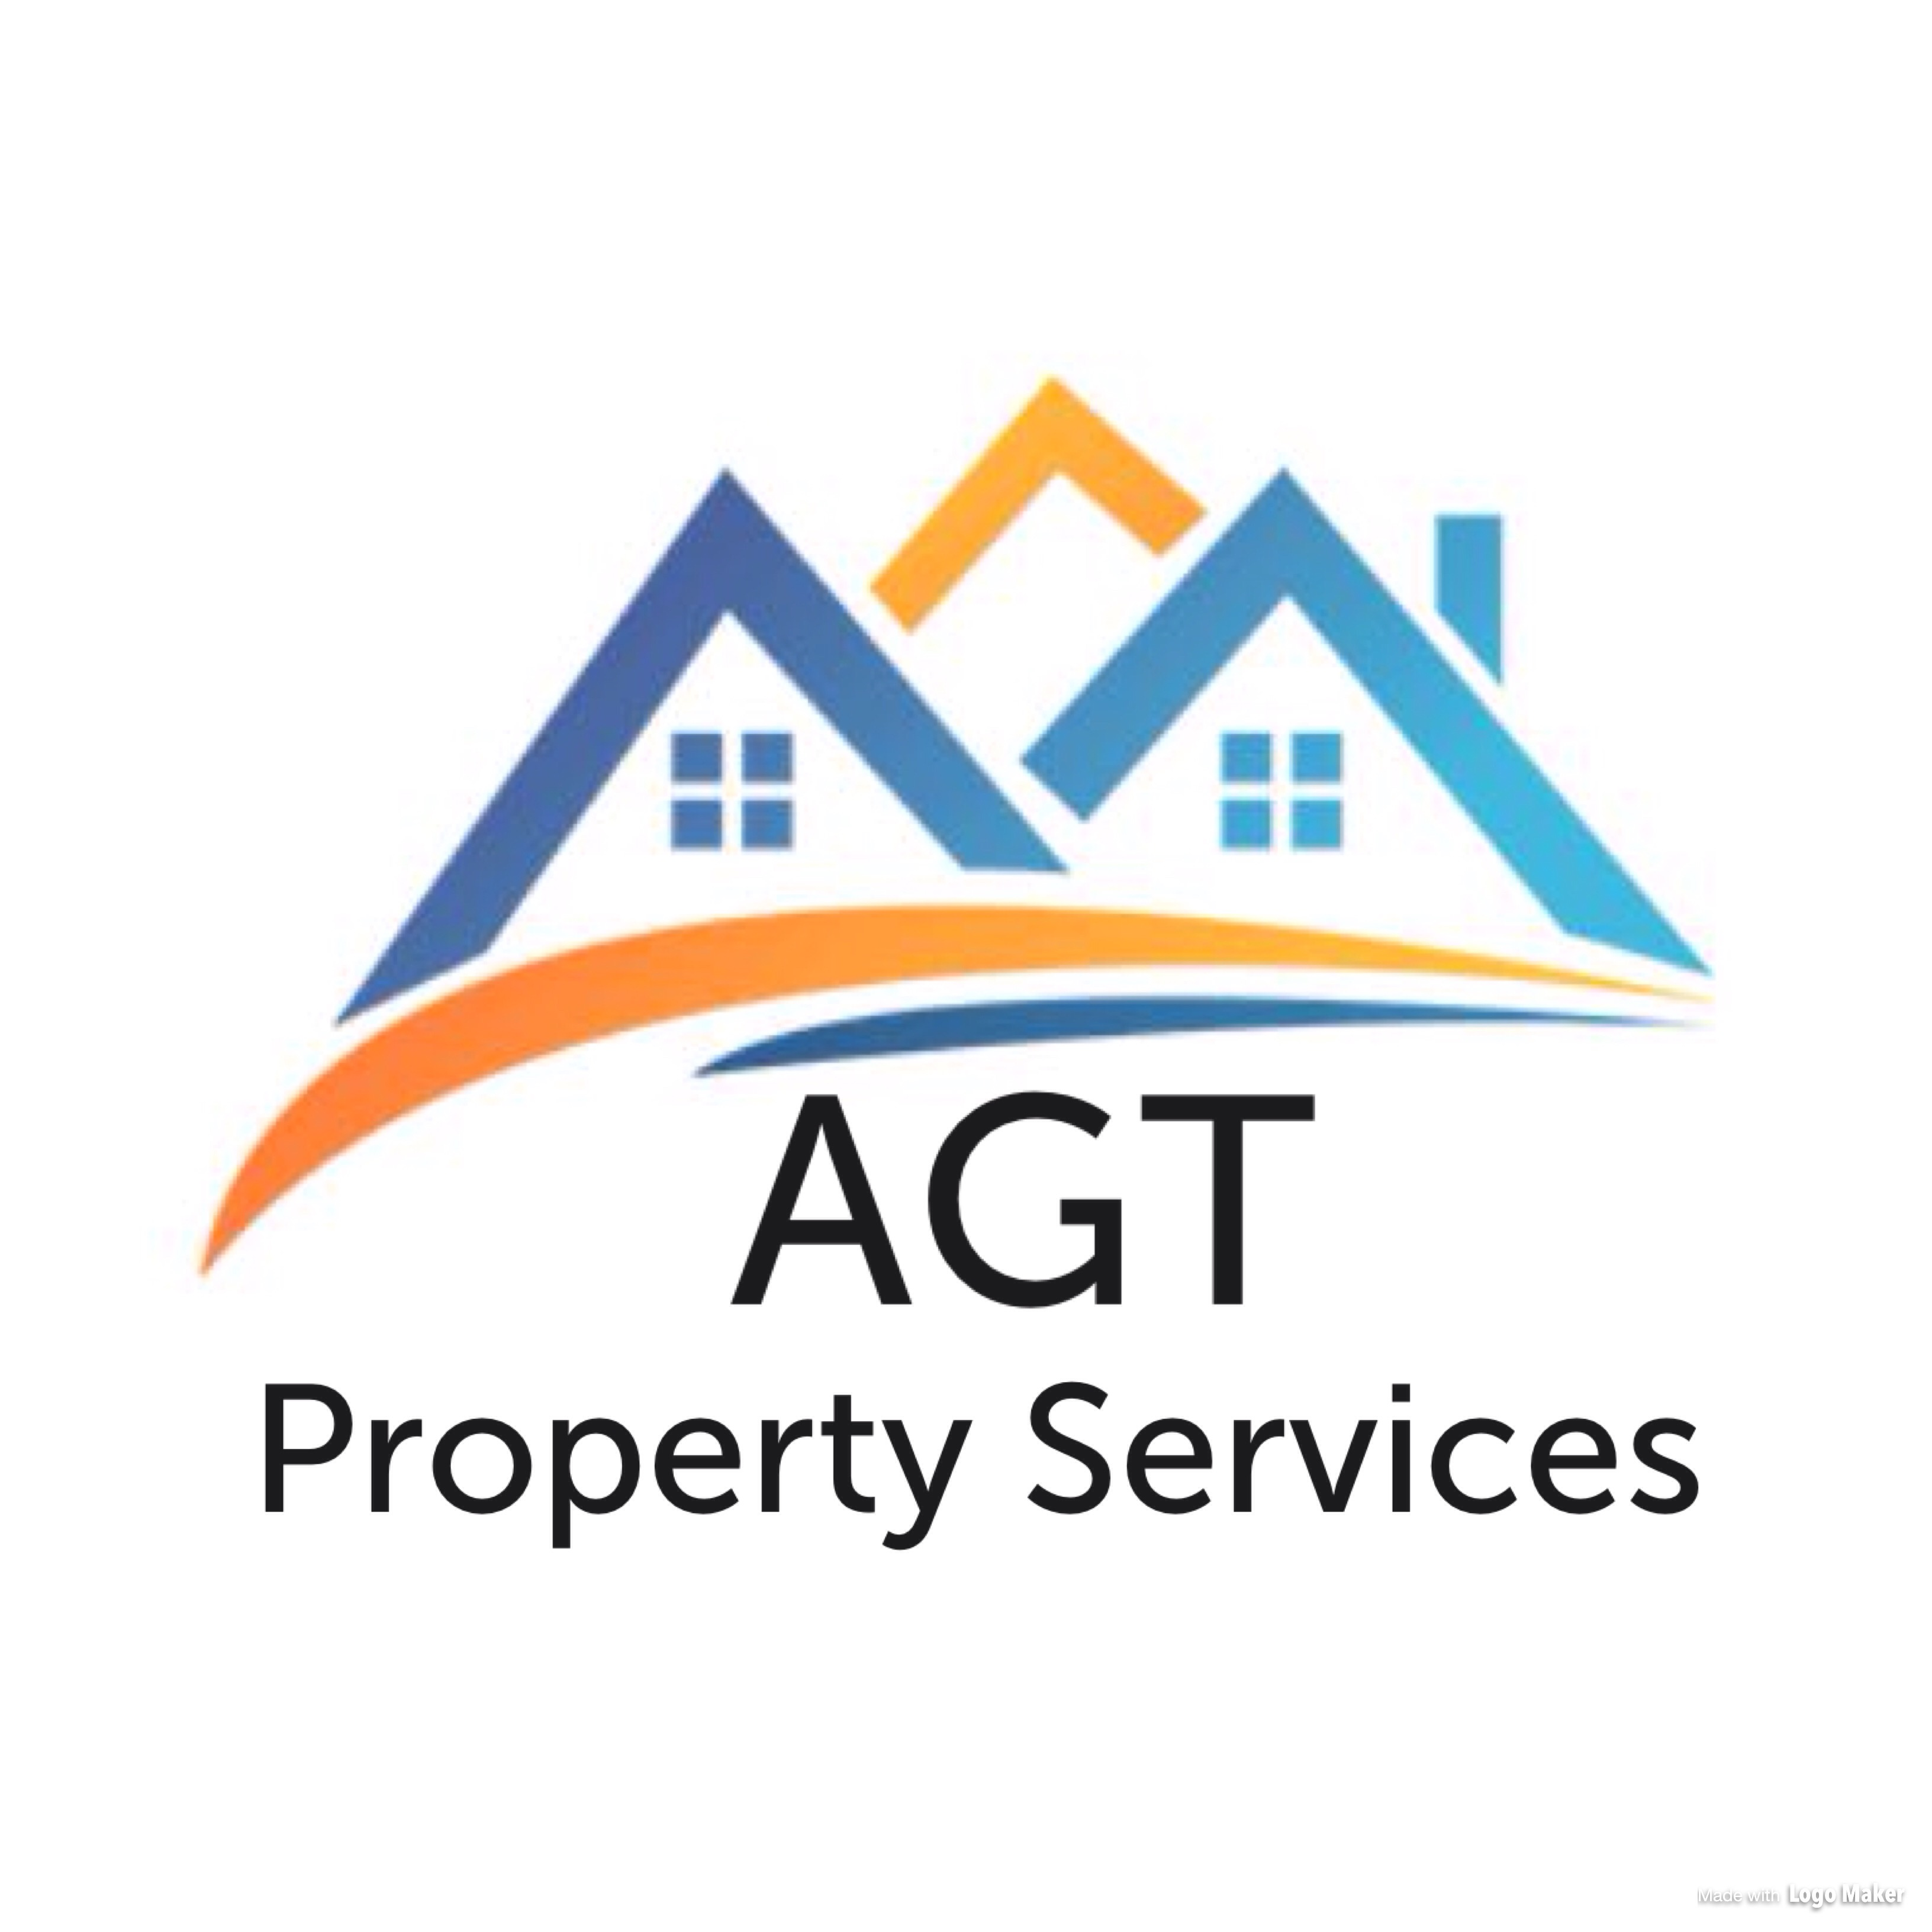 AGT Property Services